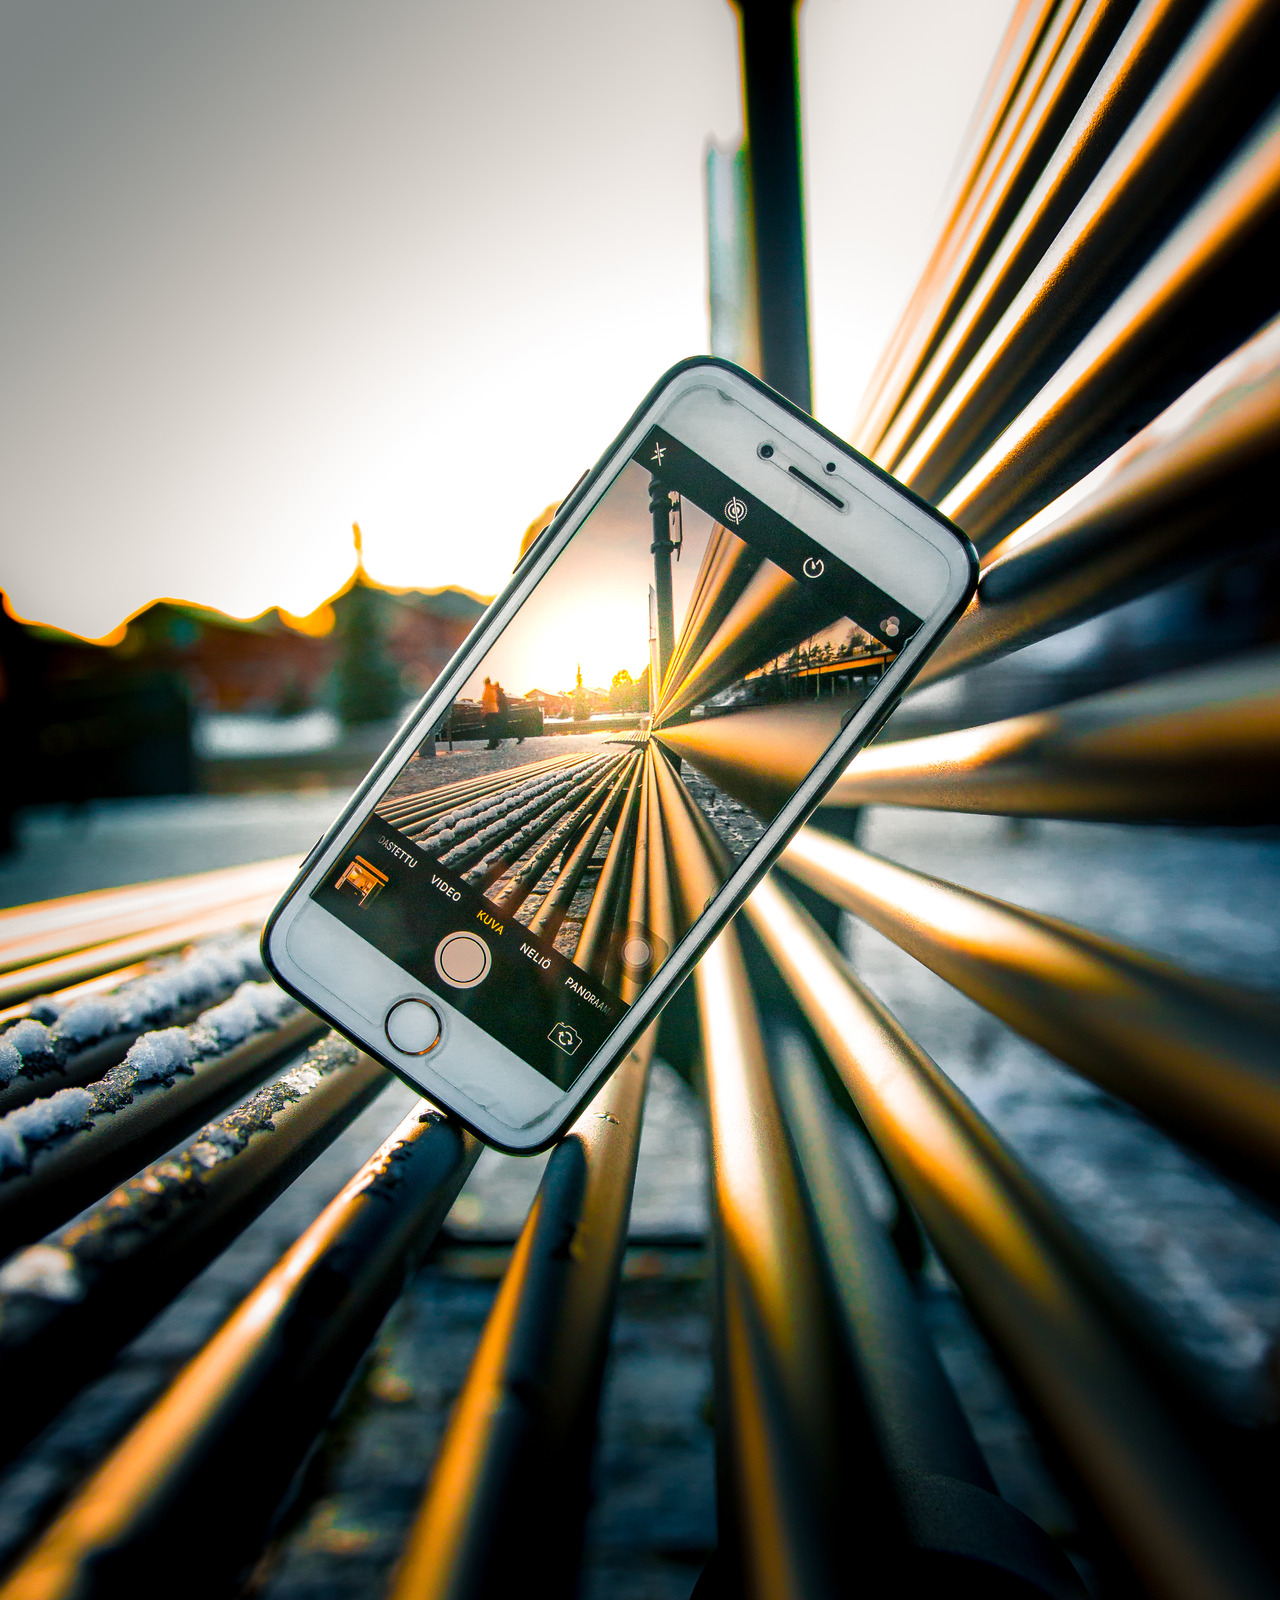 Canva - Photo Of An Iphone